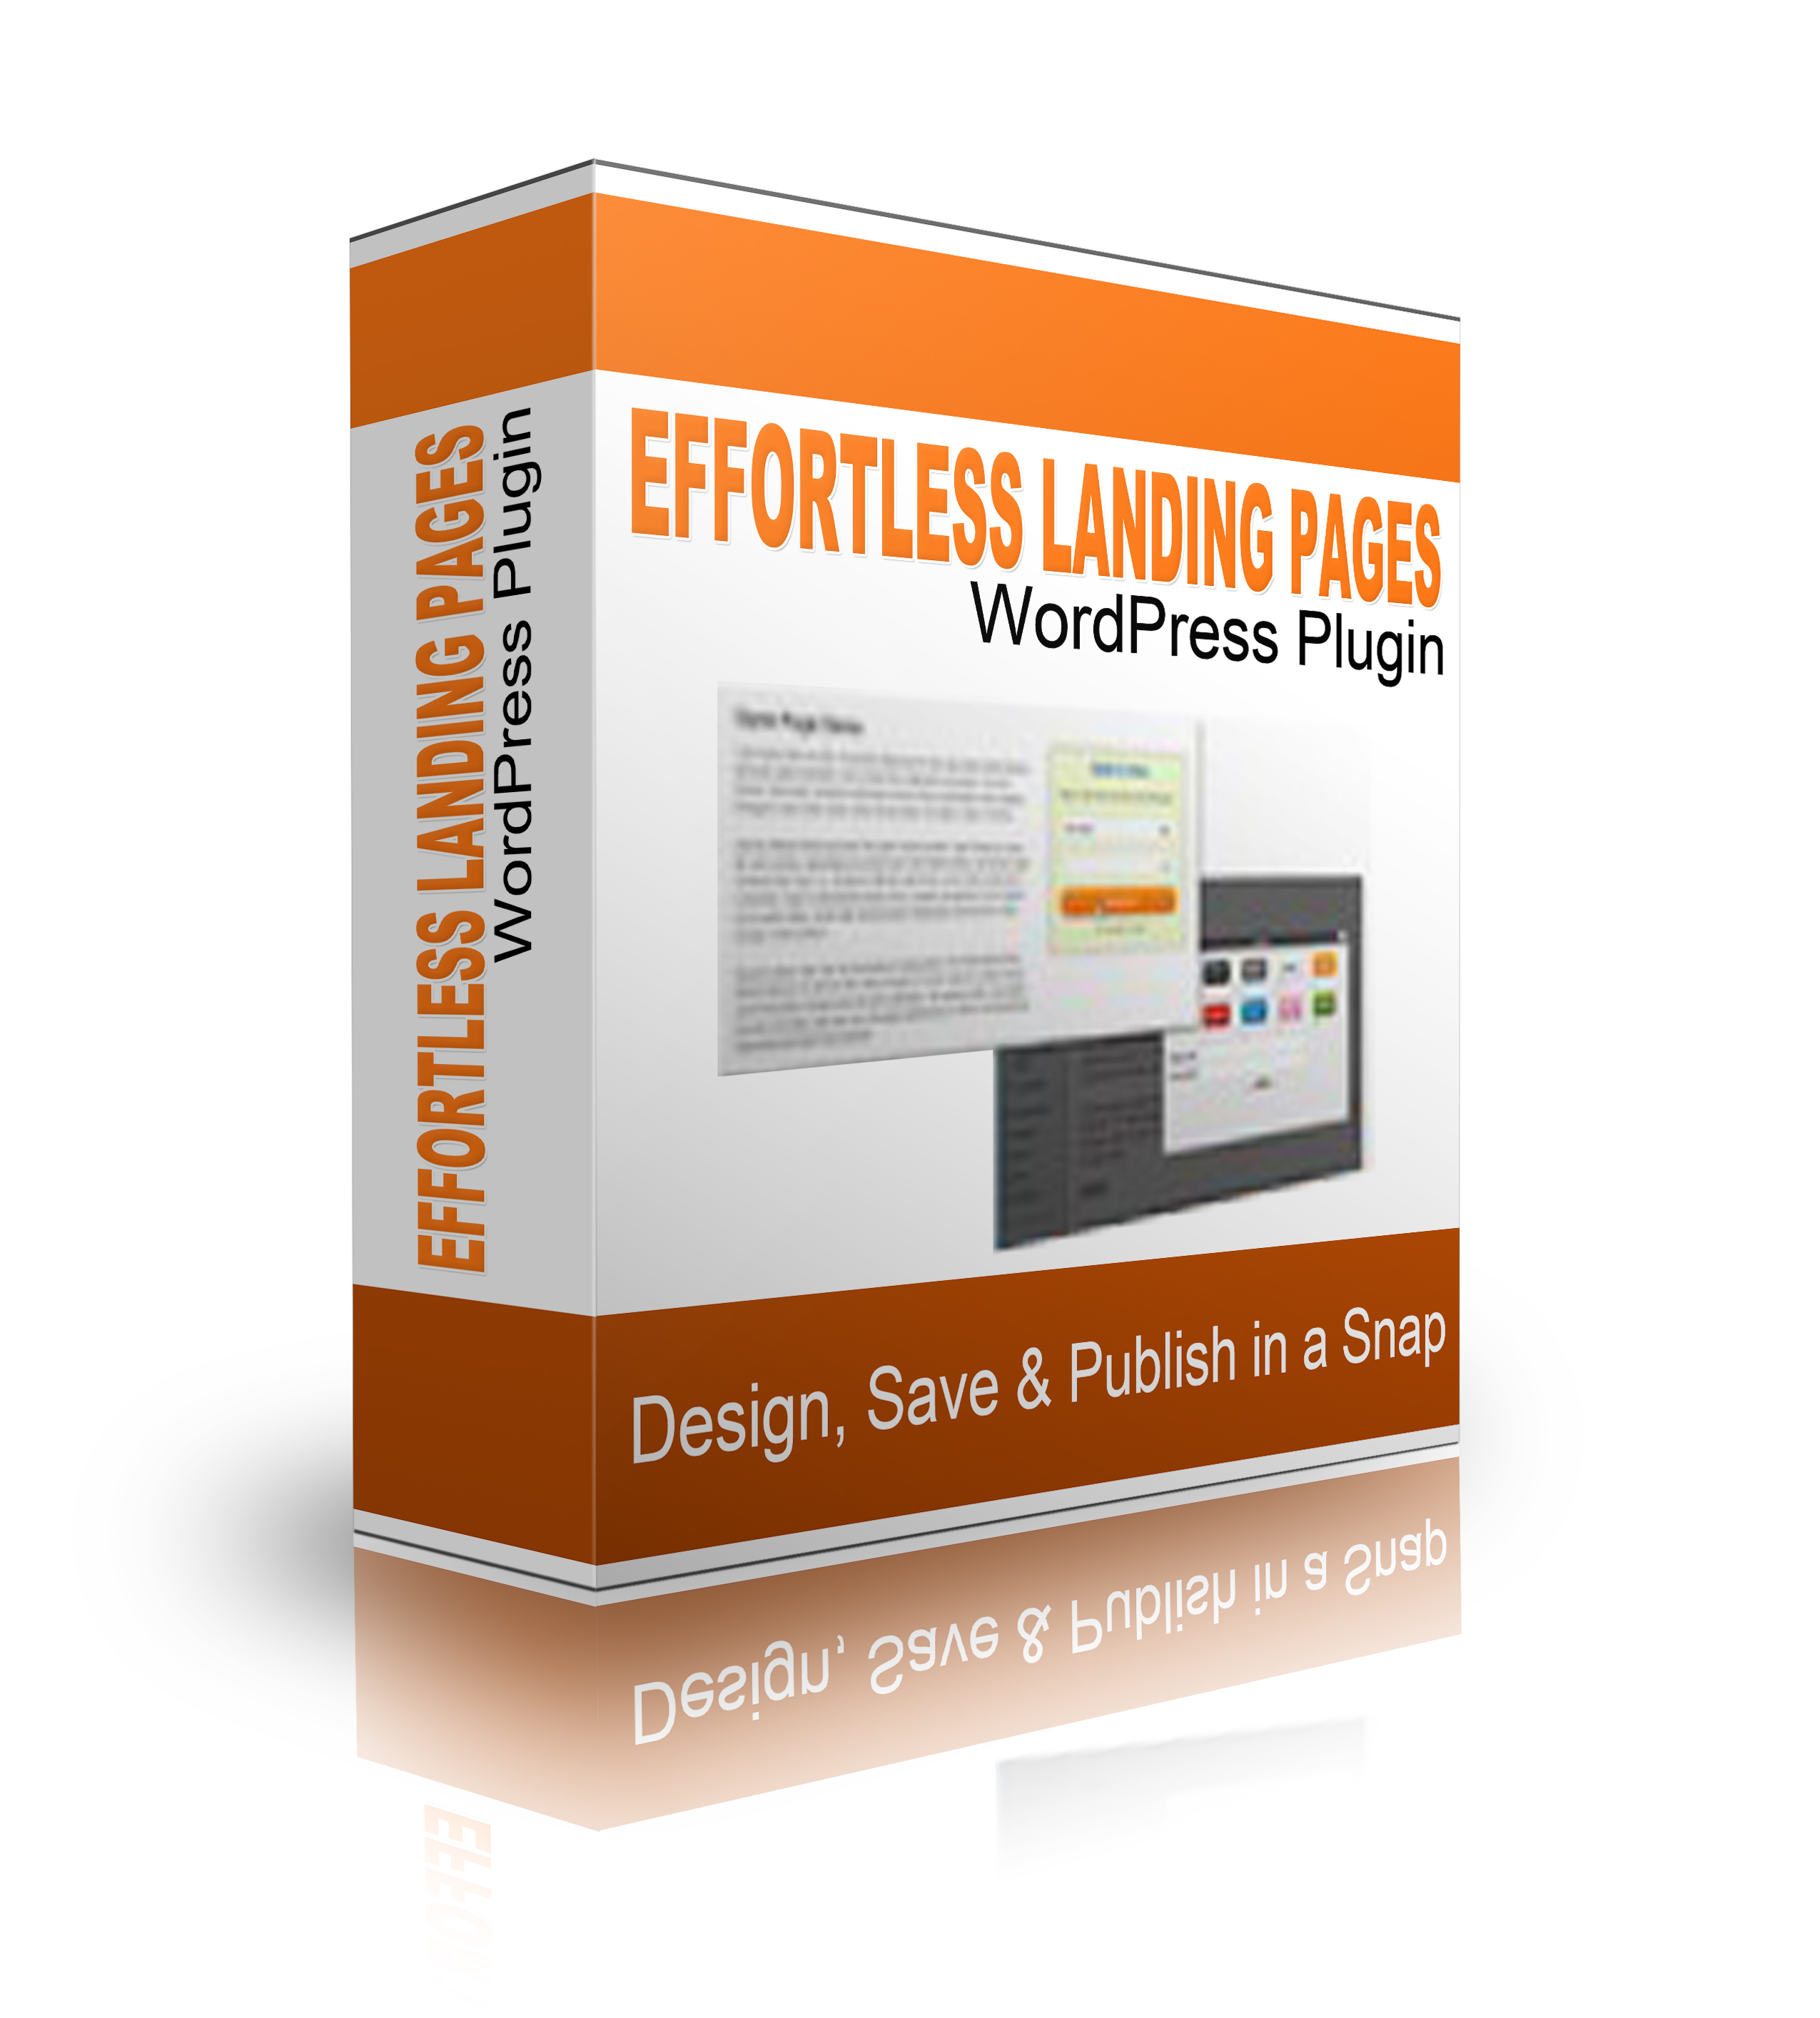 Effortless Landing Pages WP Plugin